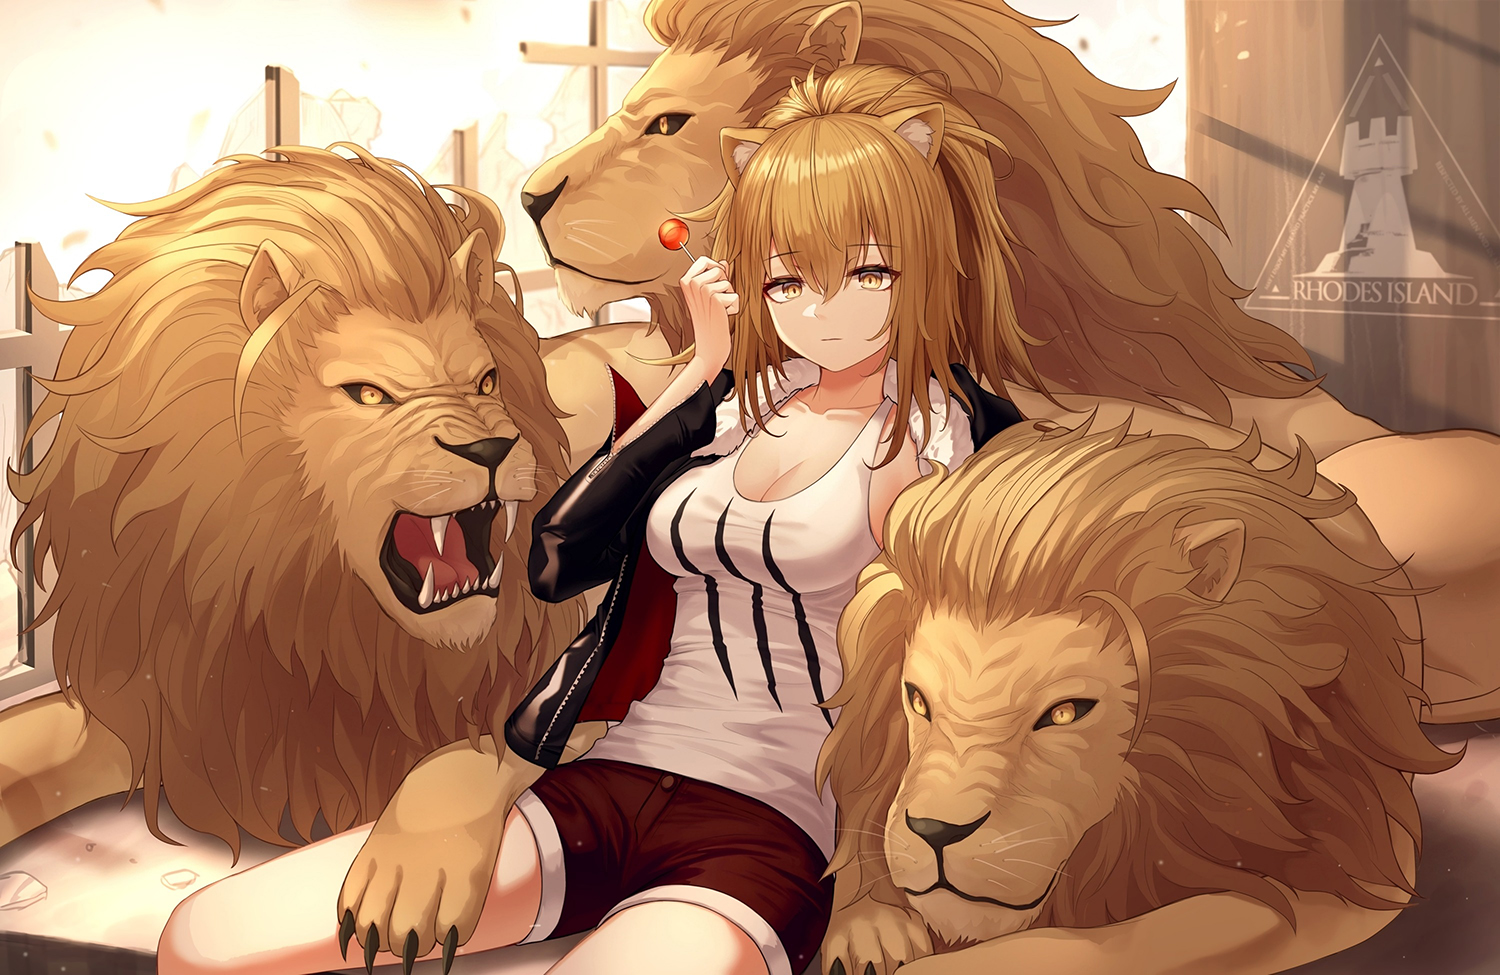 animal animal_ears arknights blonde_hair breasts candy catgirl cleavage lion lollipop long_hair myung ponytail shorts siege_(arknights) yellow_eyes